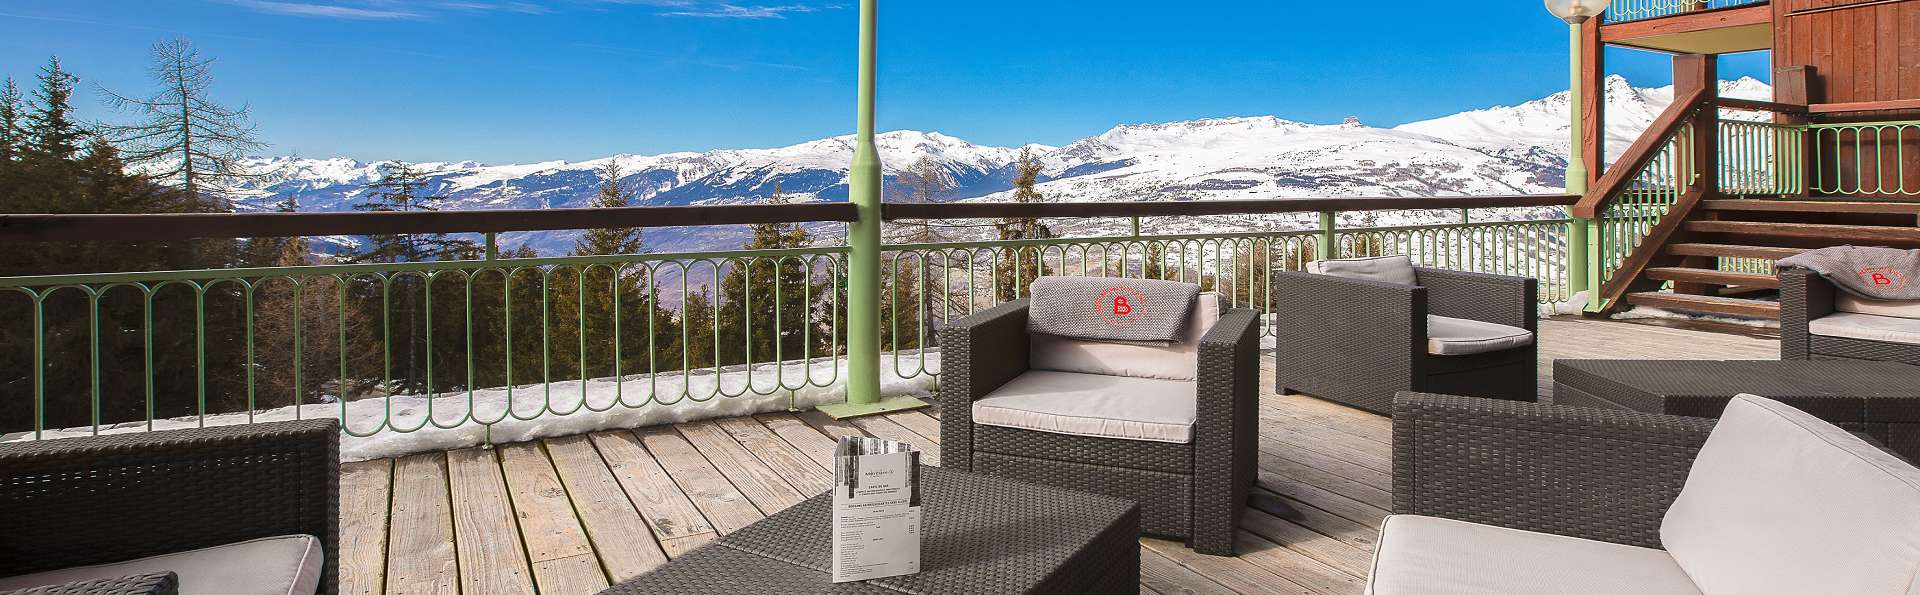 Mercure Les Arcs 1800 - EDIT_Terrasse_bar_ext.jpg